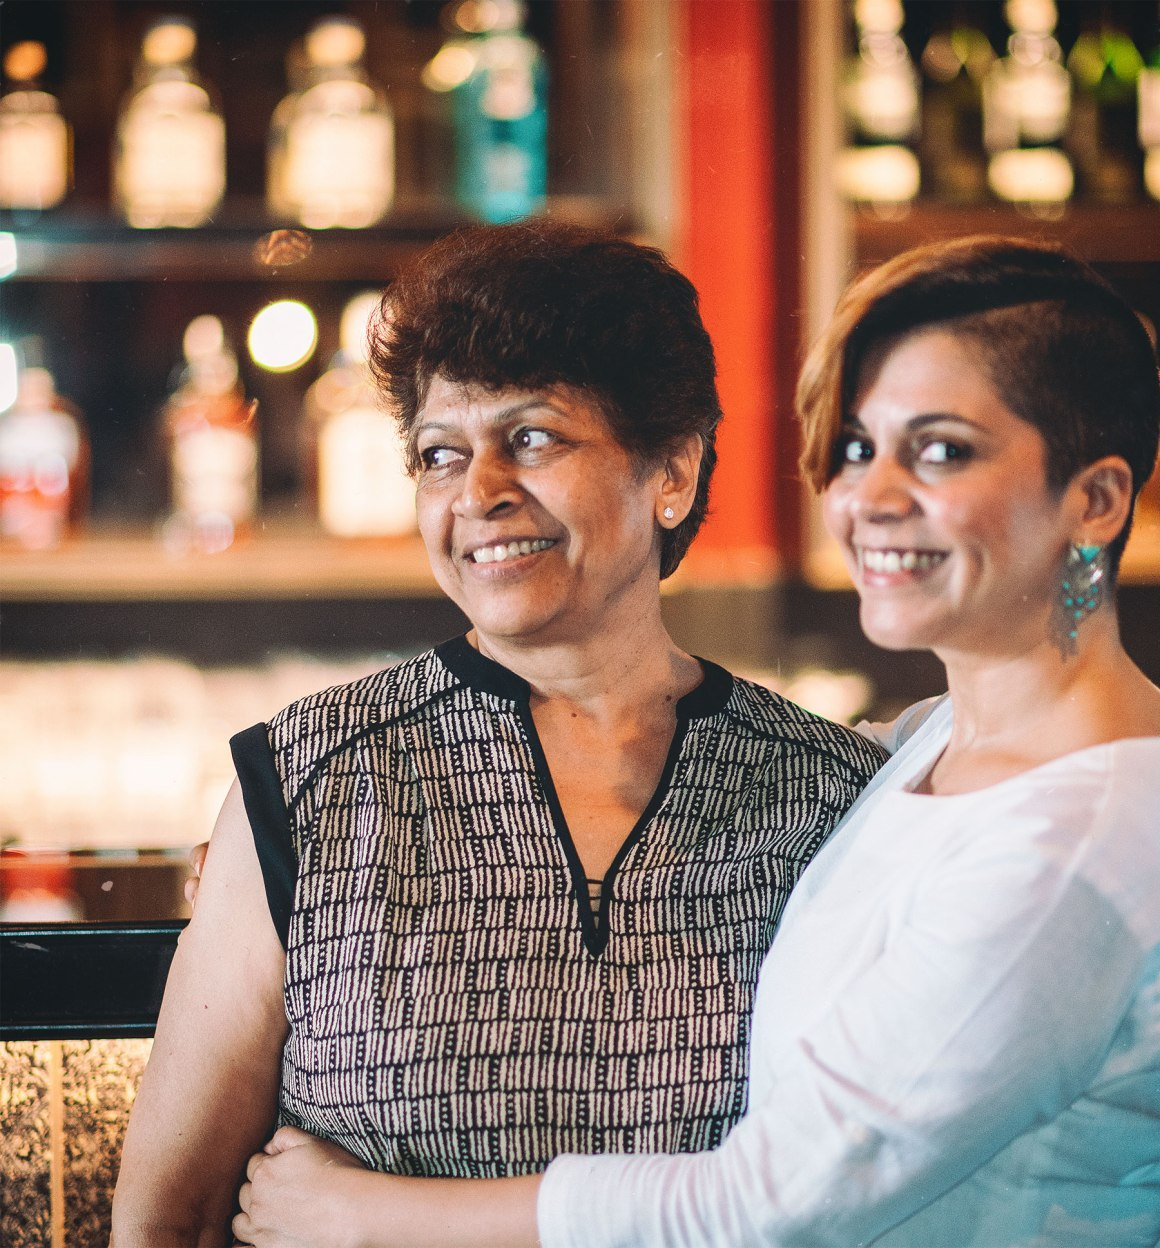 naina.co, naina, naina redhu, triple8 restaurant, 888, ansal plaza, new delhi, eyesfordining, mom's birthday, birthday lunch, pan-asian, cuisine, drinks, dining, fine dining, eyesfordelhi, eyesforindia, family meal, family restaurant, portraits